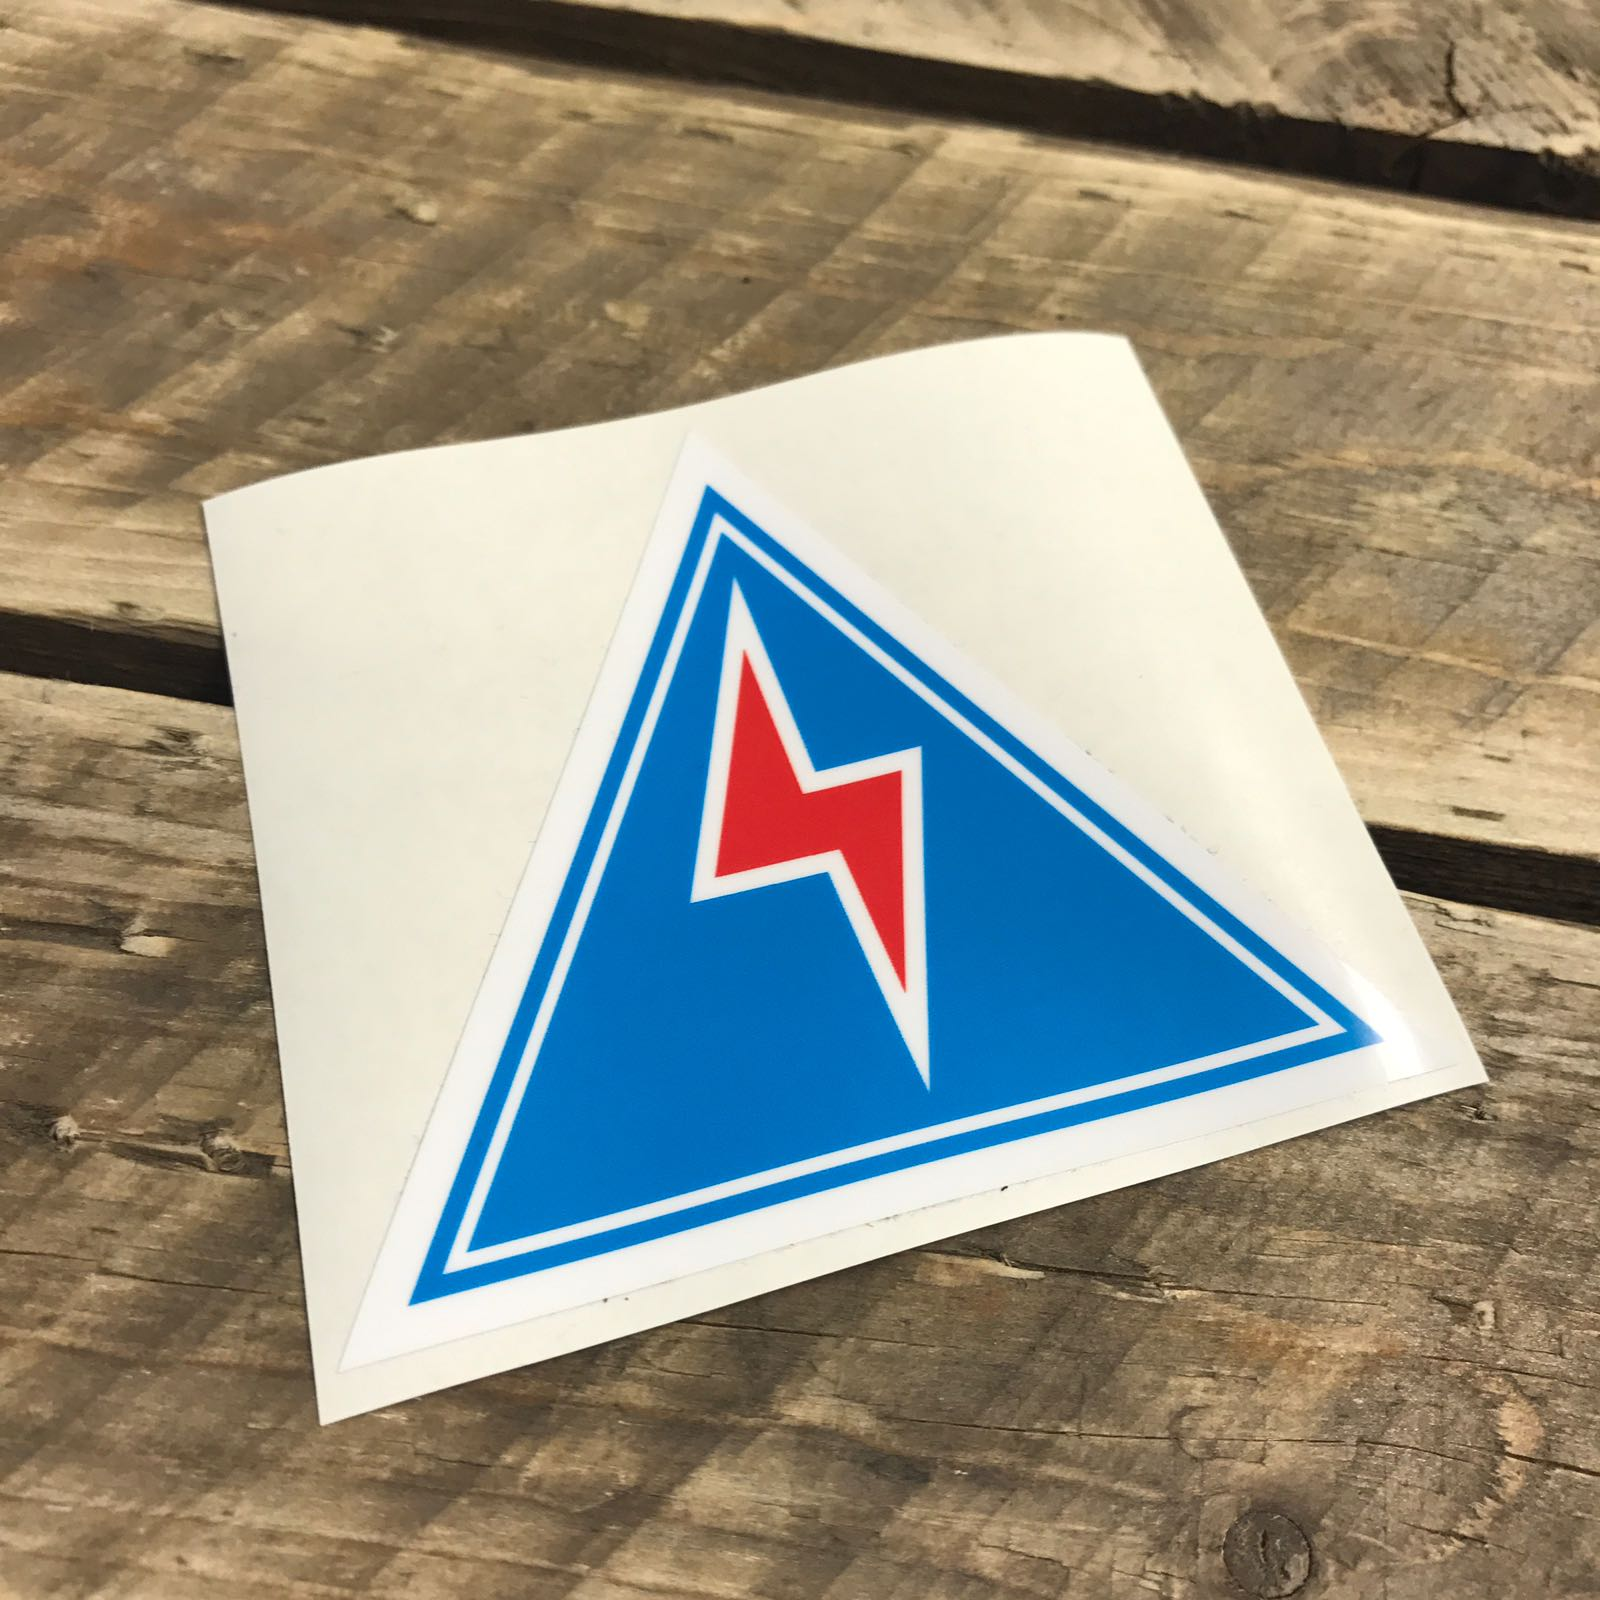 Electrical Cut Off Sticker